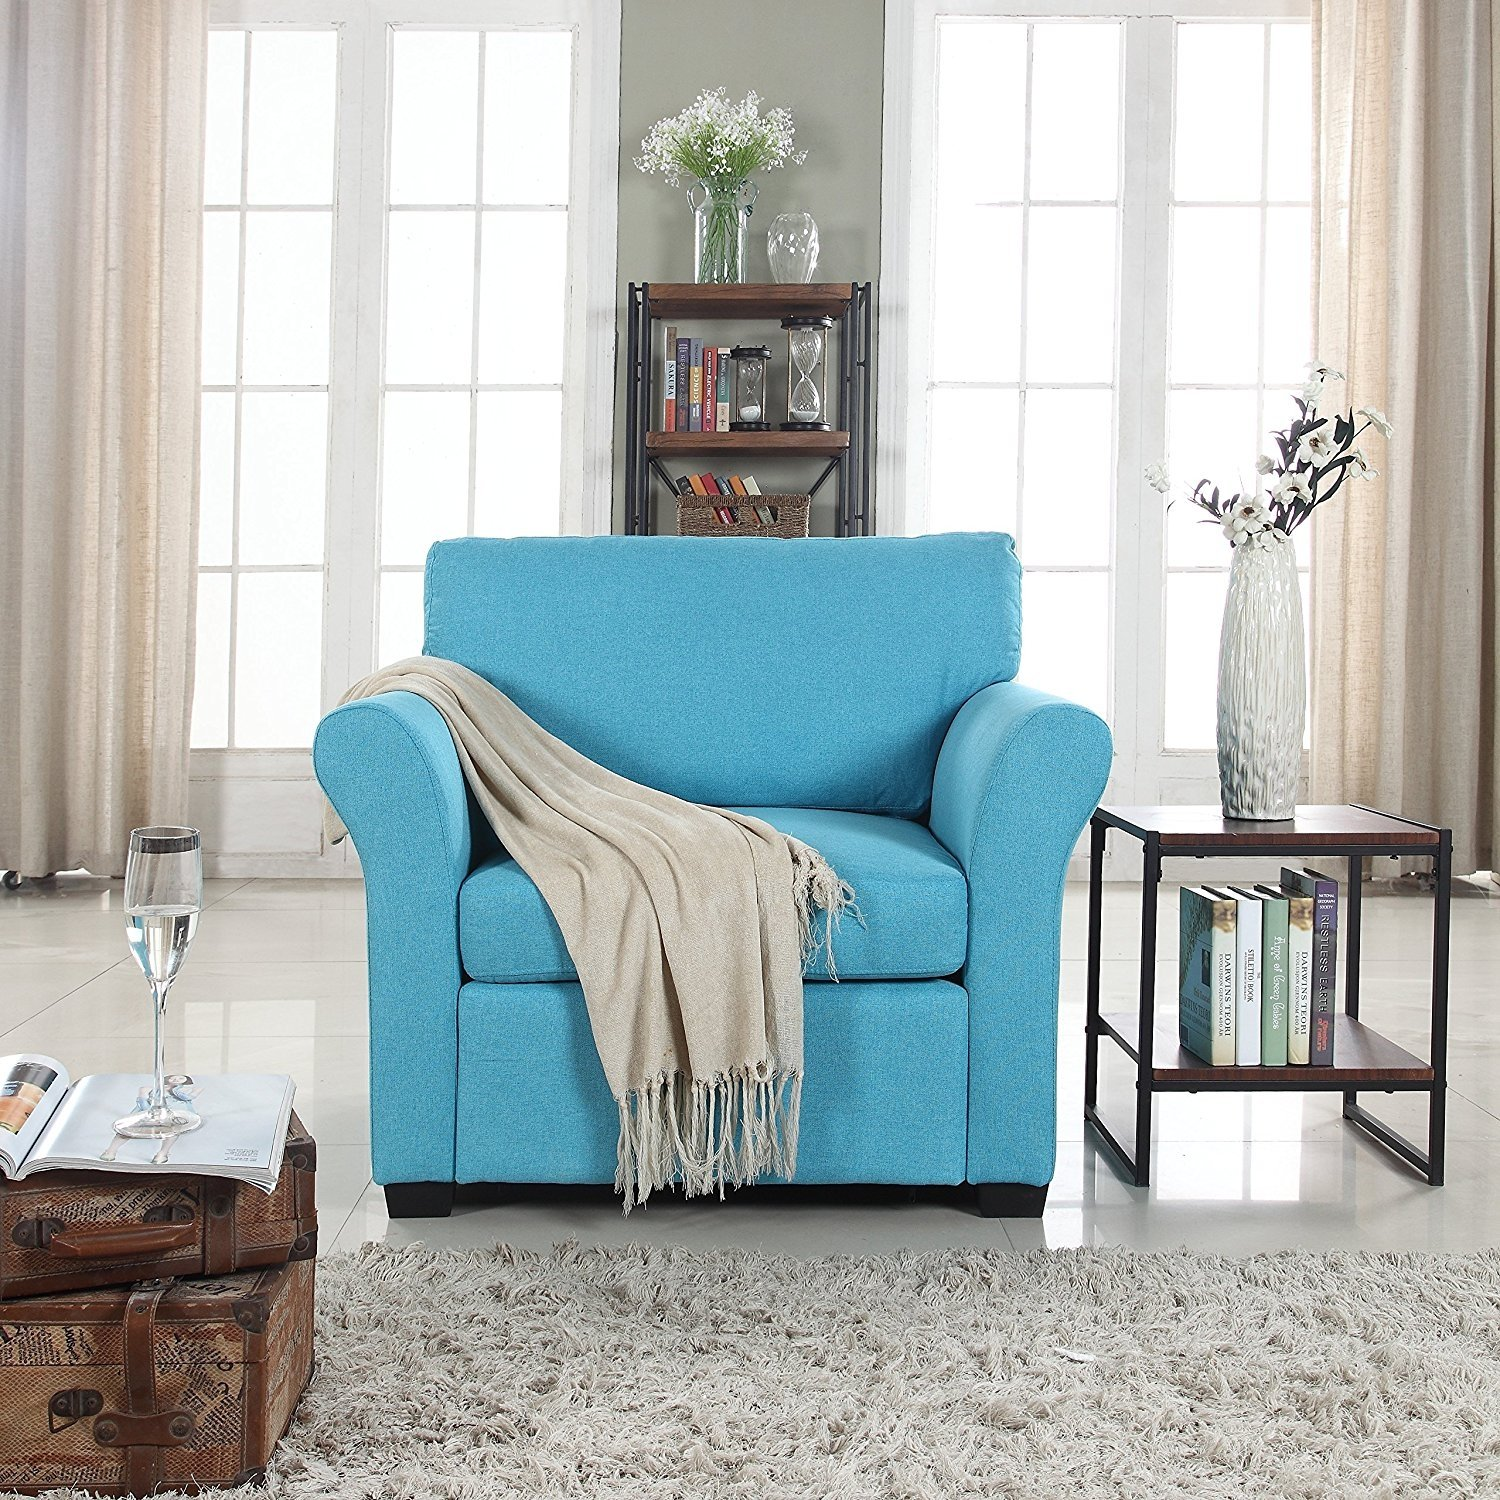 Details About Blue Classic Contemporary Linen Fabric Accent Chair Casual Living Room Armchair